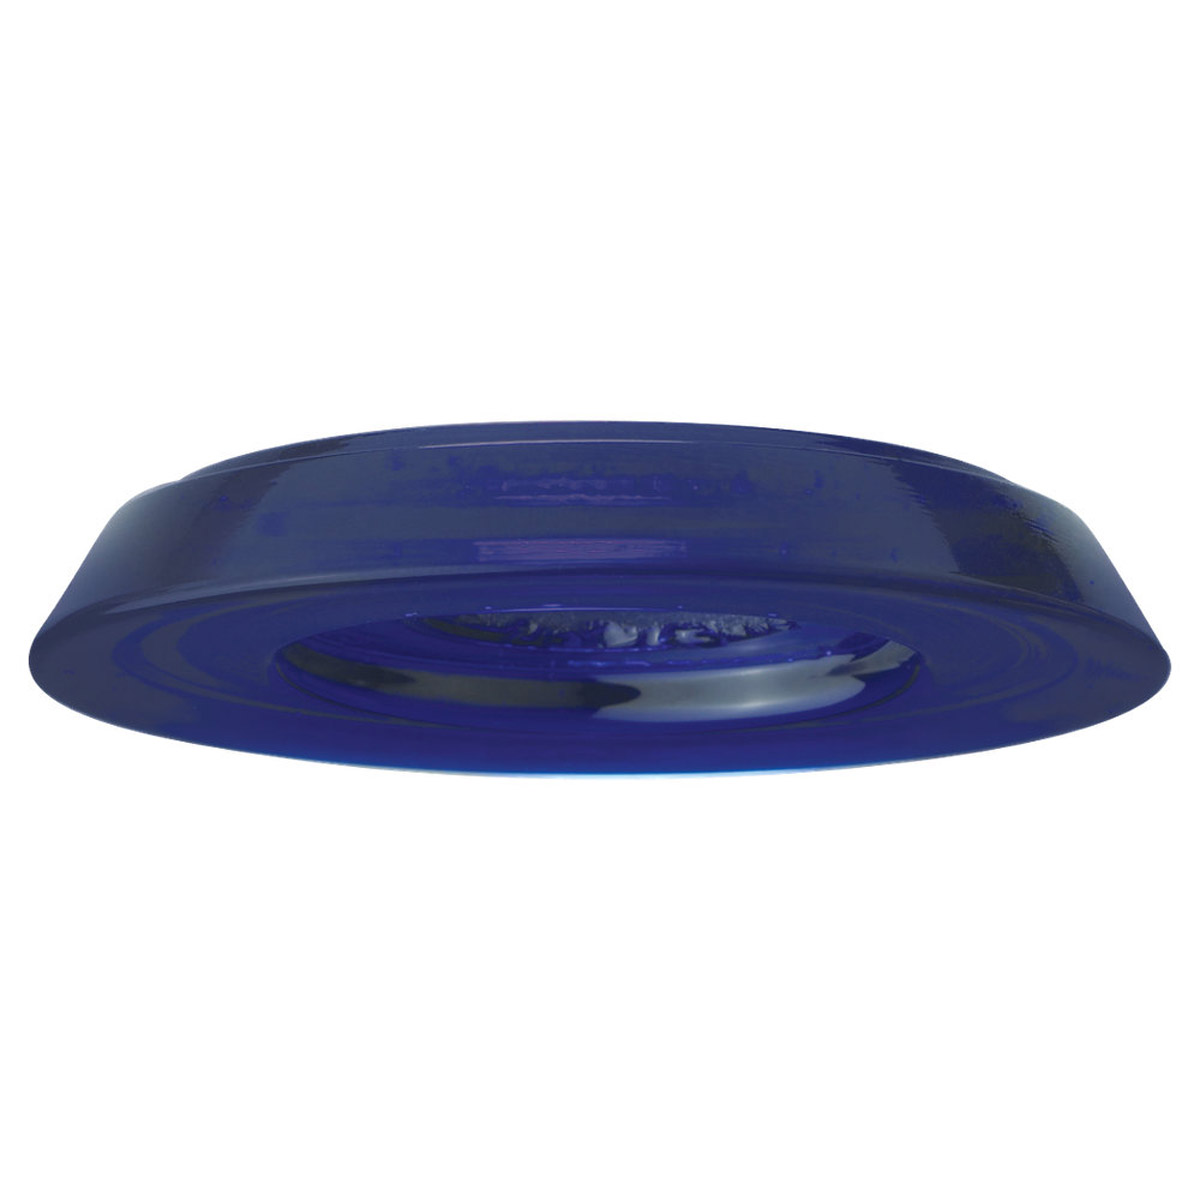 Sea Gull Lighting Urban Loft Optional Glass Disk in Cobalt Blue 94340-657 photo